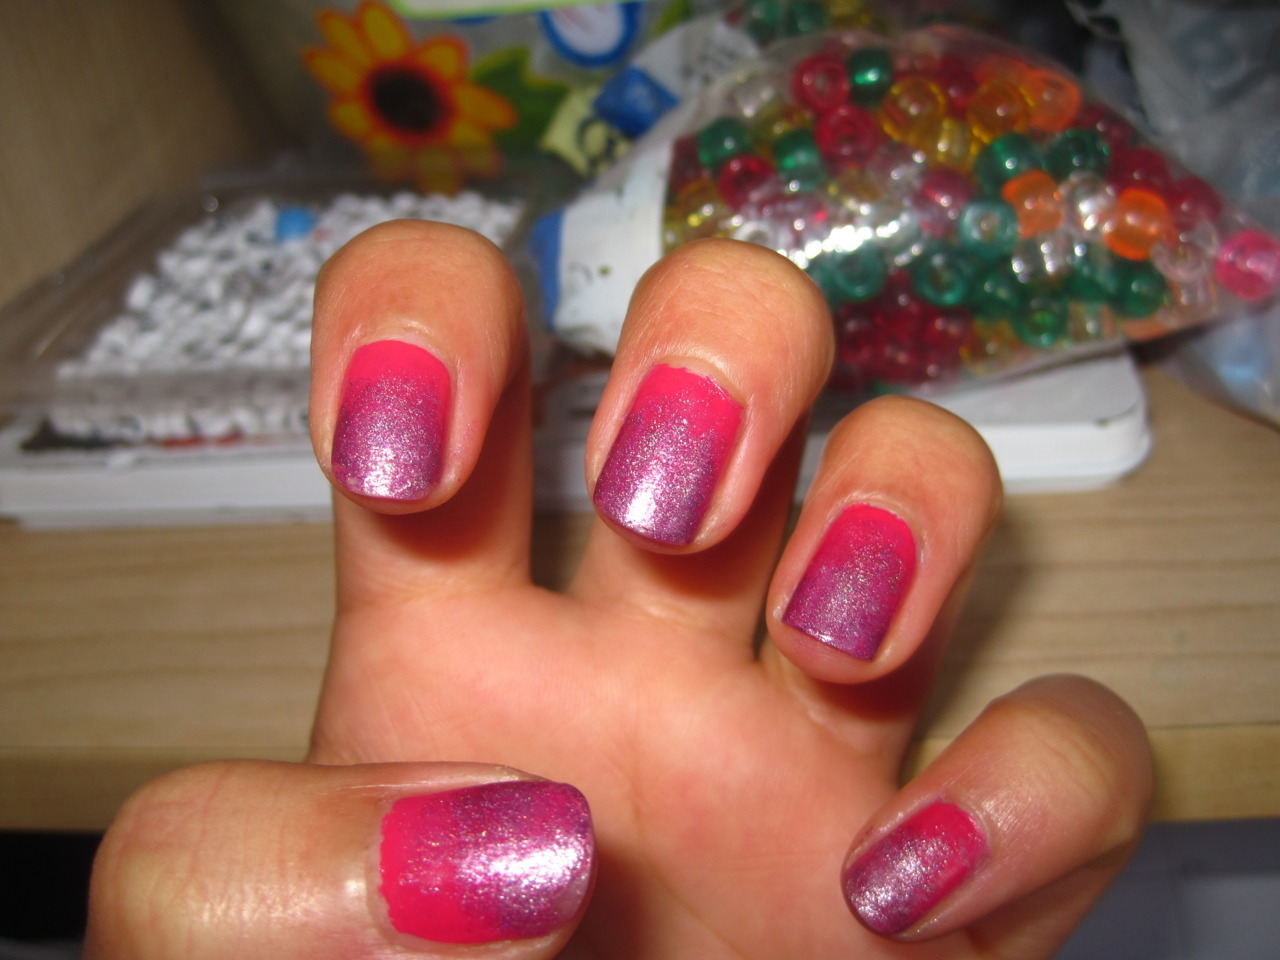 my first attempt at gradient nails…not too bad I would say!